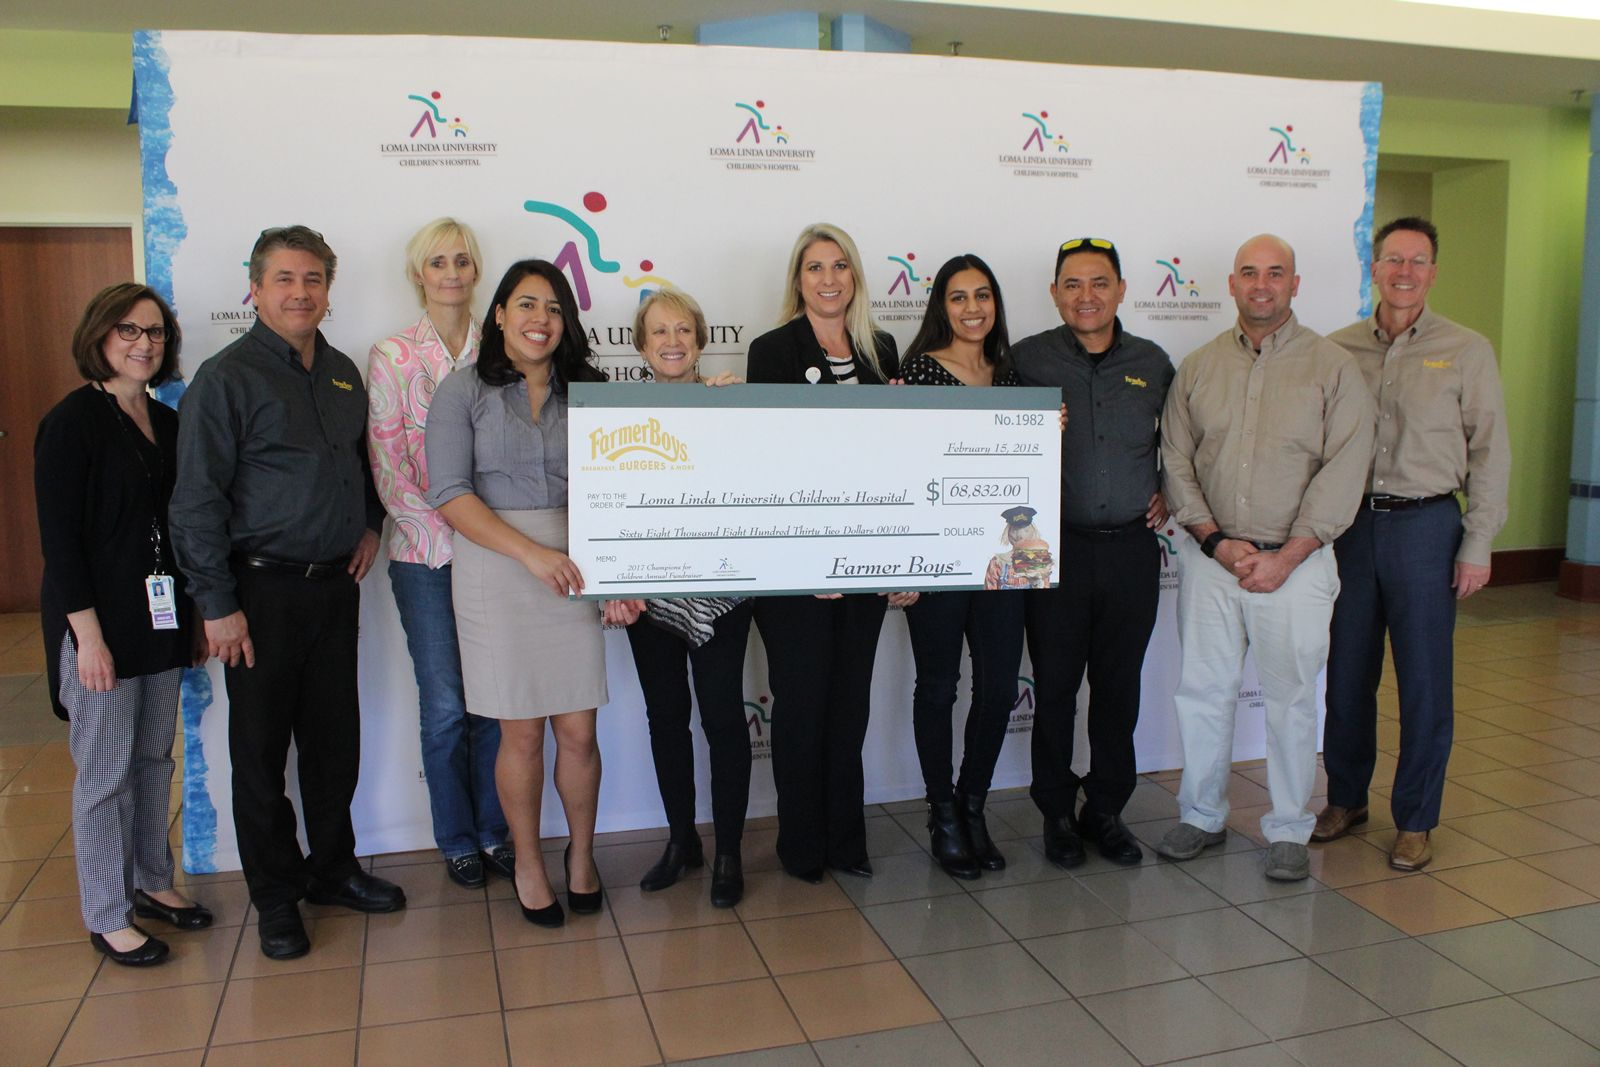 Farmer Boys Raises Nearly $70,000 for Loma Linda University Children's Hospital